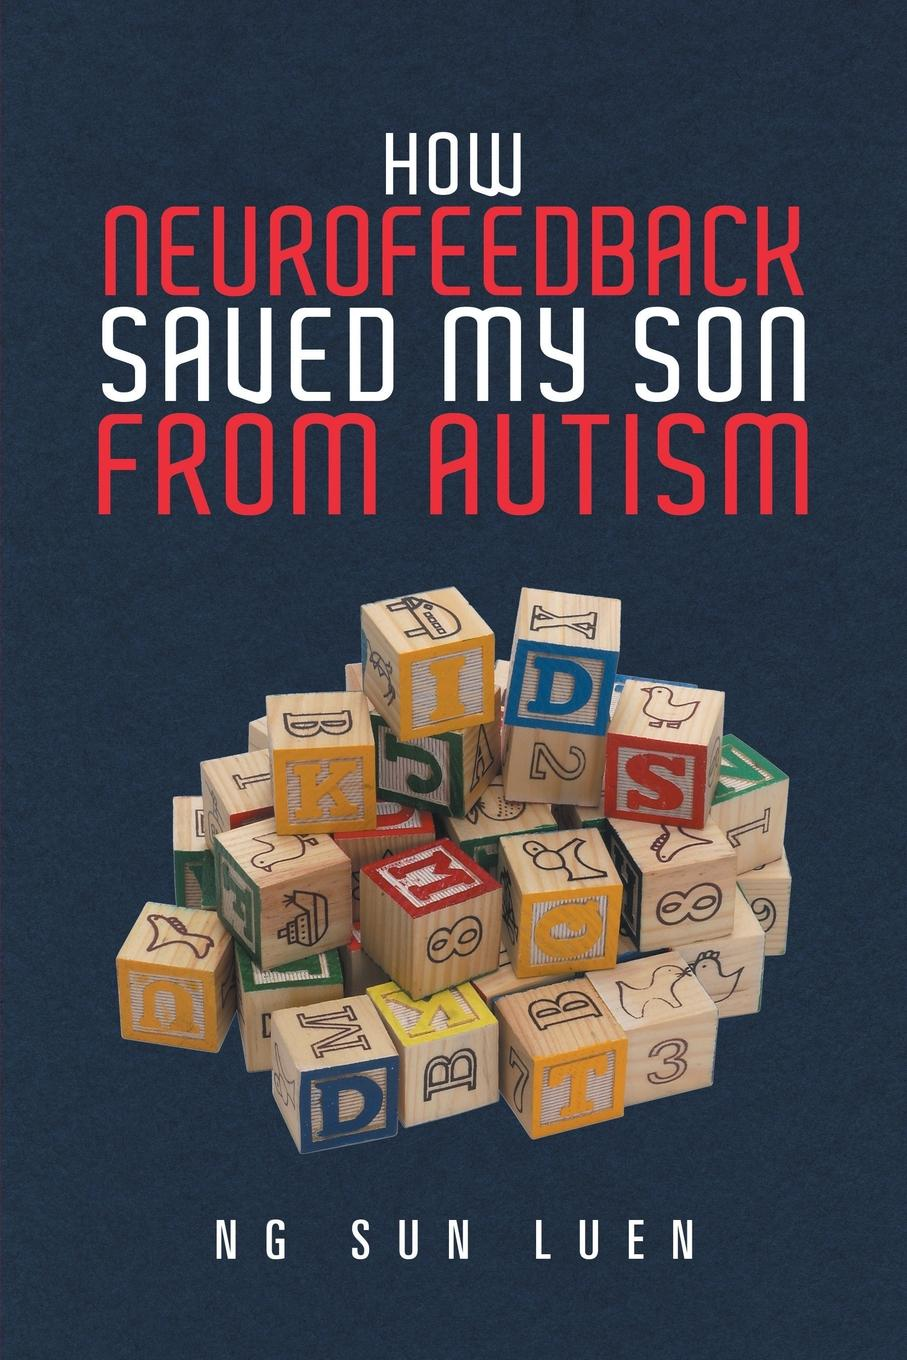 How Neurofeedback Saved My Son from Autism